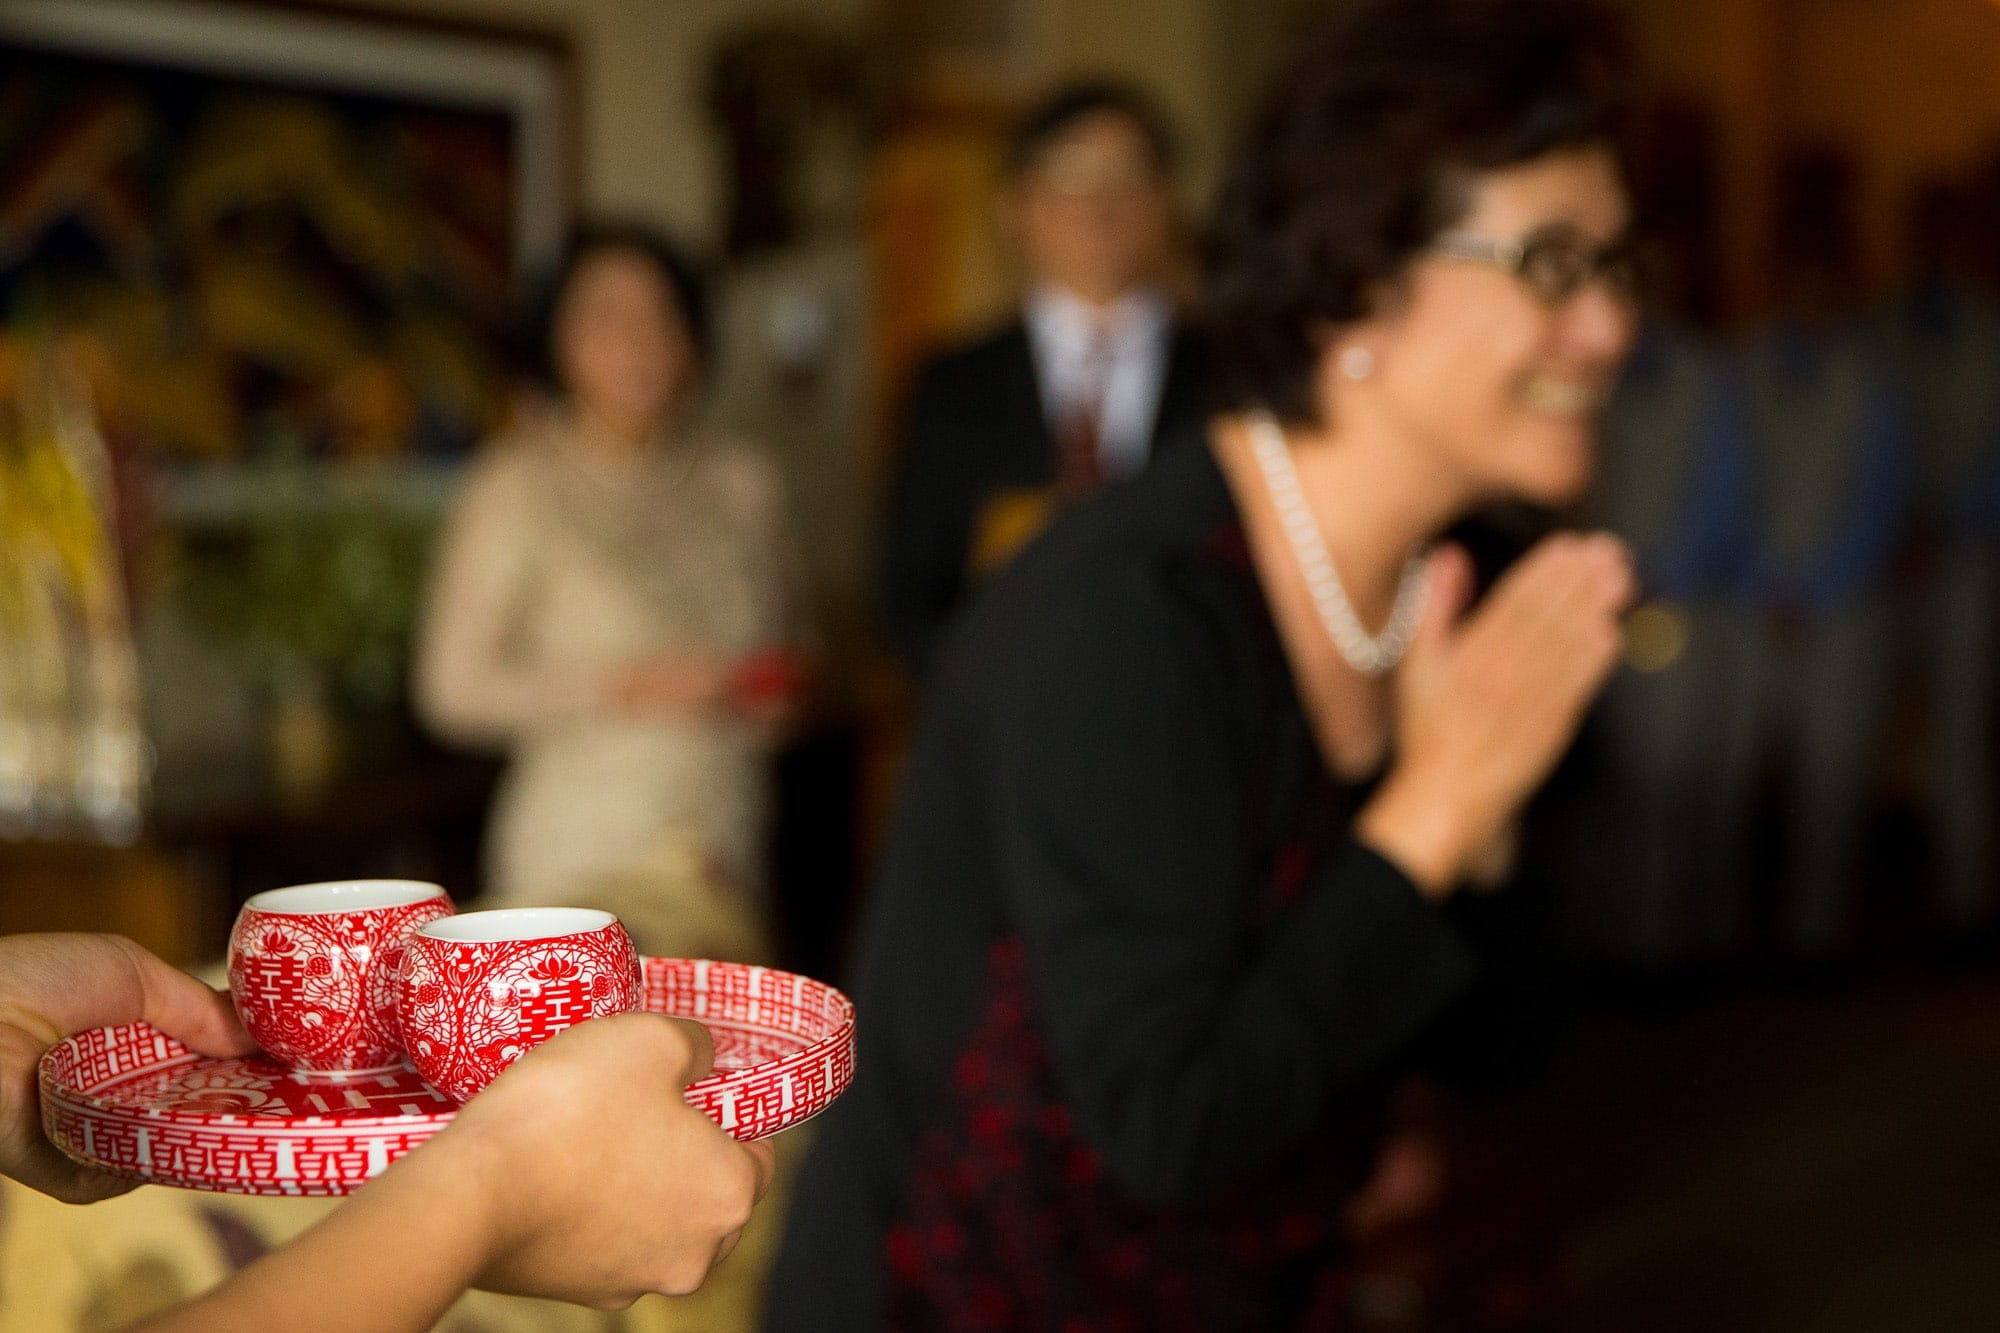 Tea is presented during a traditional Chinese tea ceremony before the wedding